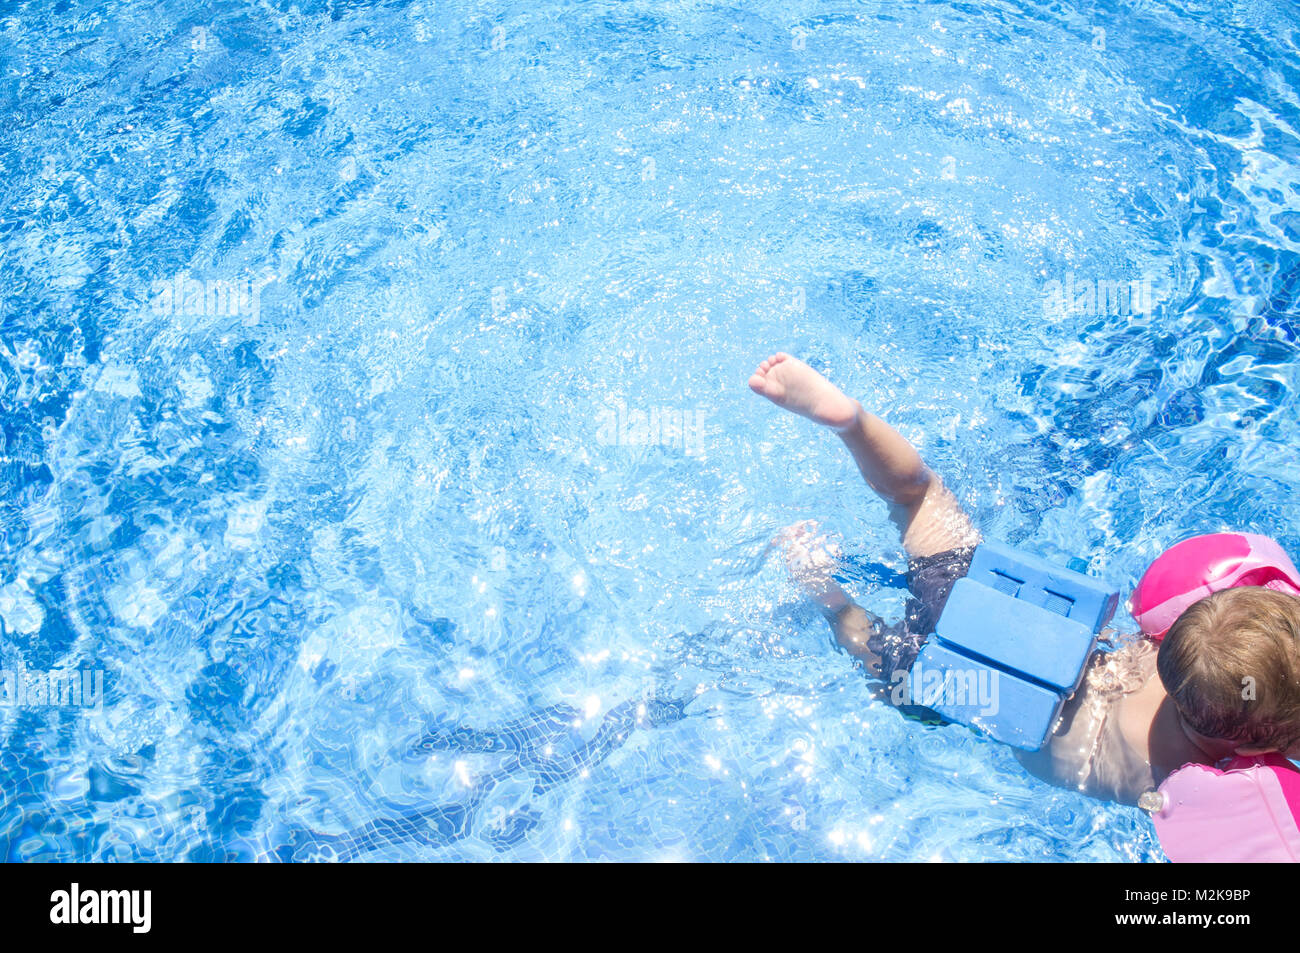 Little boy enjoying safety at swimming pool. He wears armband floats and float belt - Stock Image